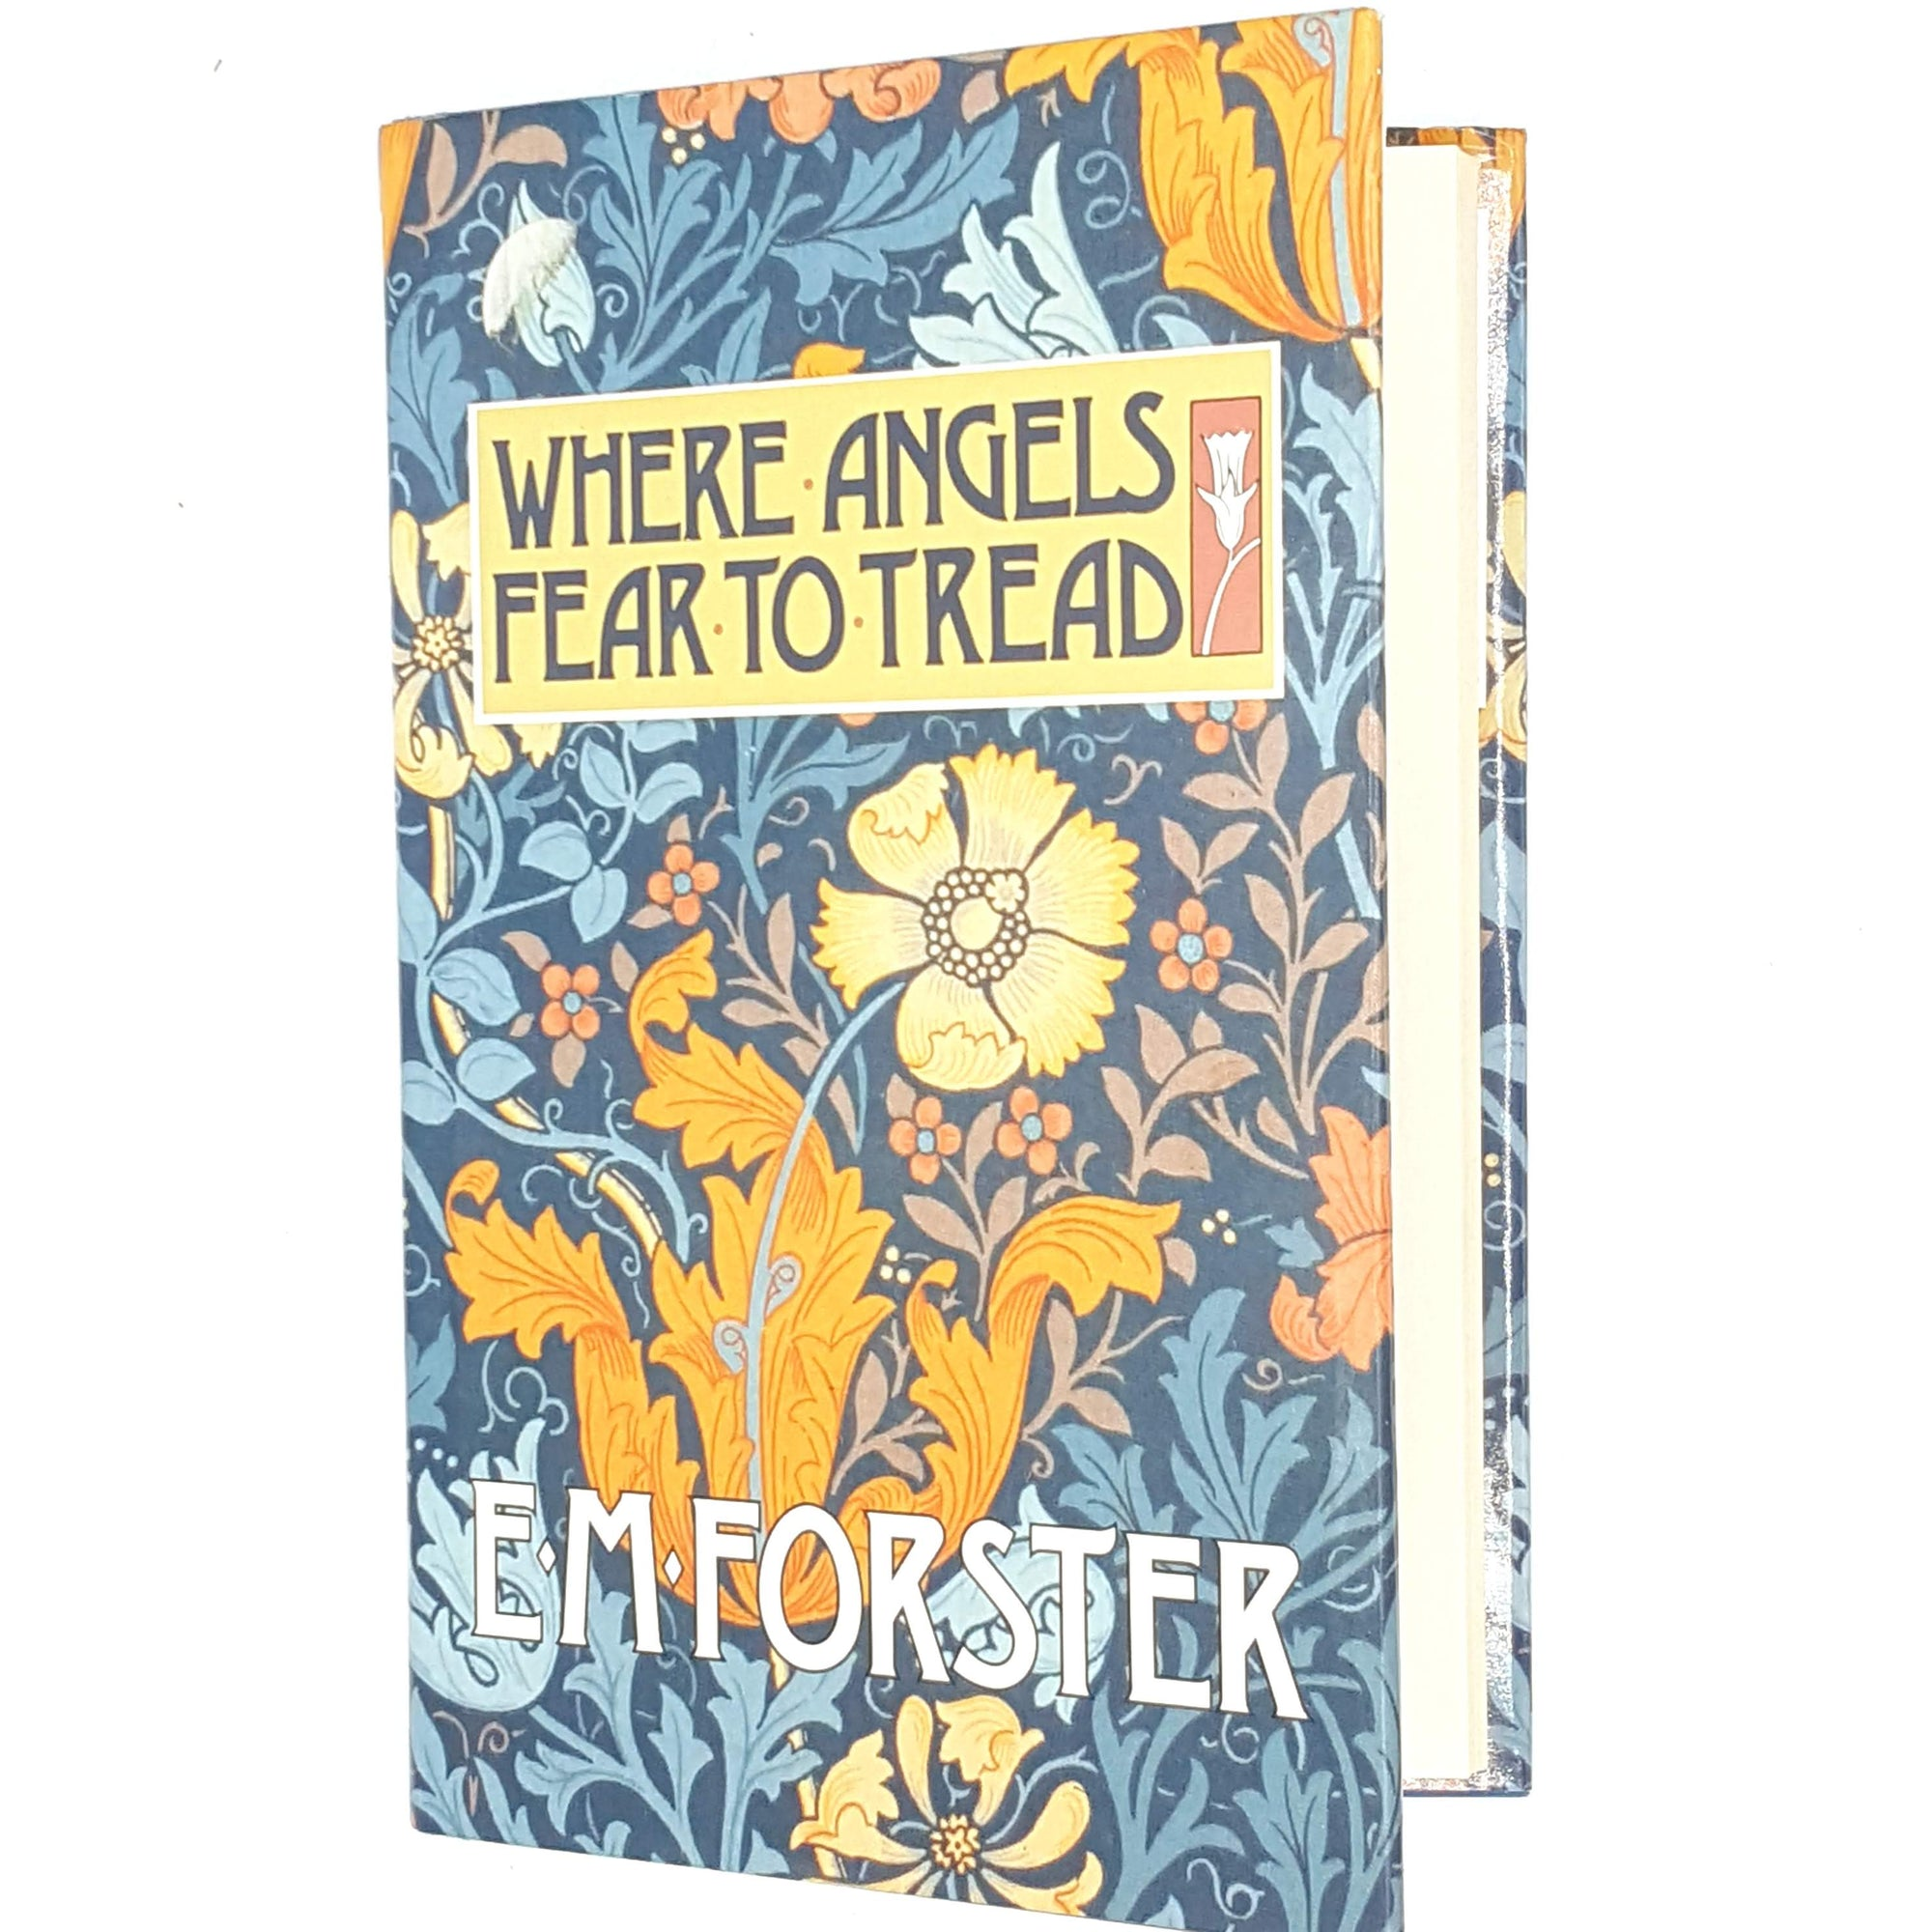 thrift-books-patterned-classic-country-house-library-vintage-BCA-where-angels-fear-to-tread-e-m-forster-decorative-old-antique-